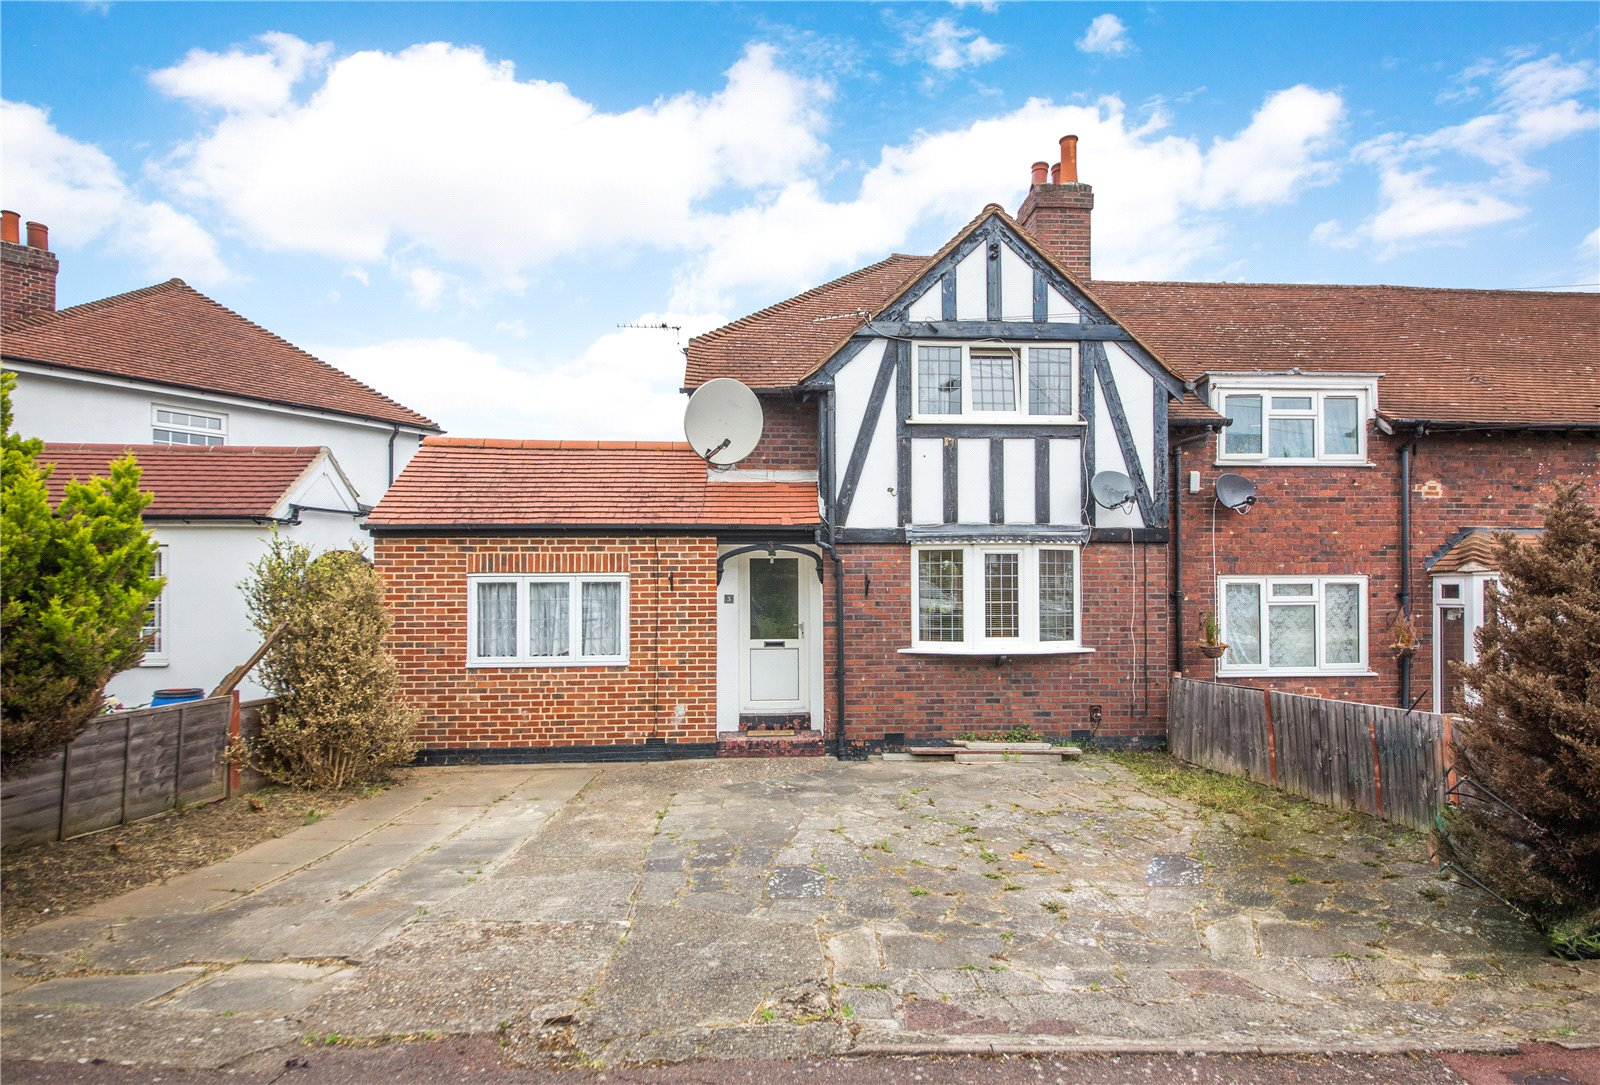 Glasbrook Road, Eltham, London, SE9